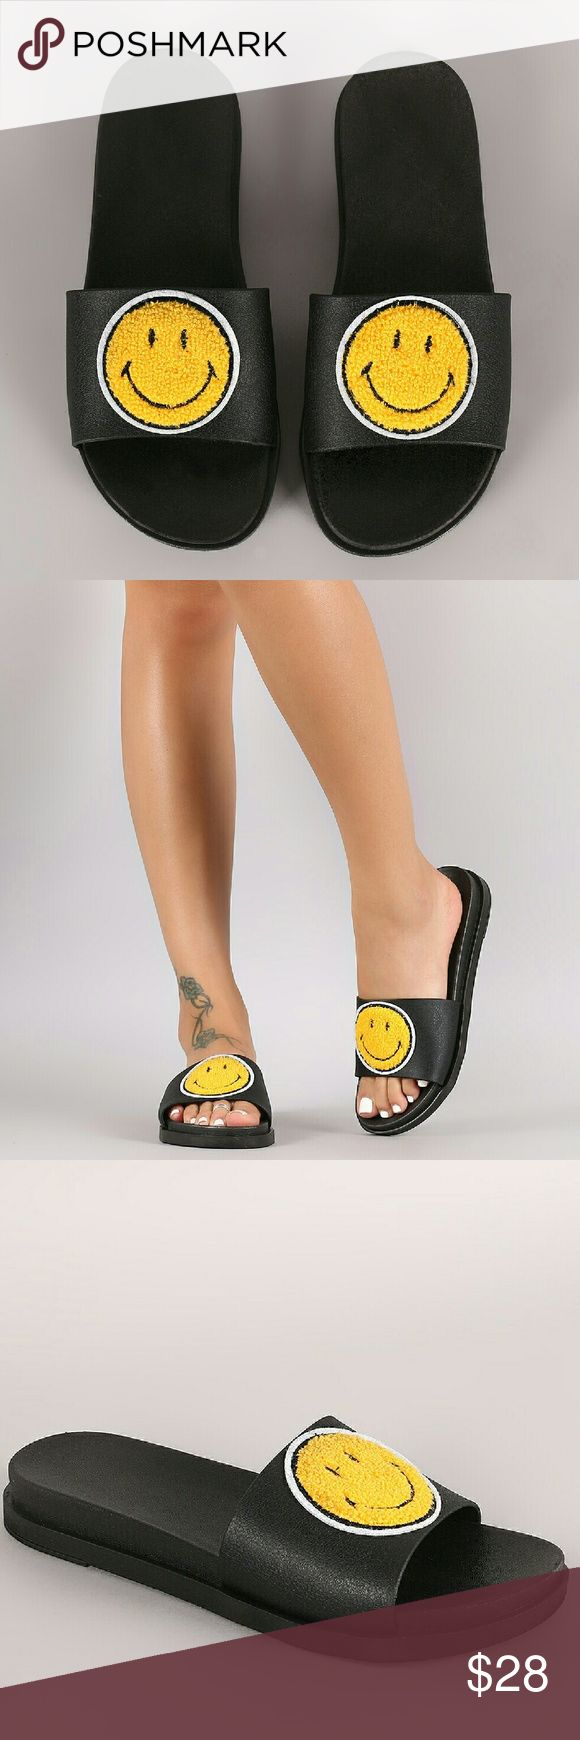 "Emoji Happy Face Slide Sandal DESCRIPTION This chic sandal features an open toe silhouette and wide band across vamp with assorted emoji patches design. Easy slide style.  Material: PVC (man-made) Sole: PVC  MEASUREMENT Heel Height: 1"" w/ 0.75"" Platform (approx)  TRUE SIZE SARAH SIAH  Shoes Sandals"